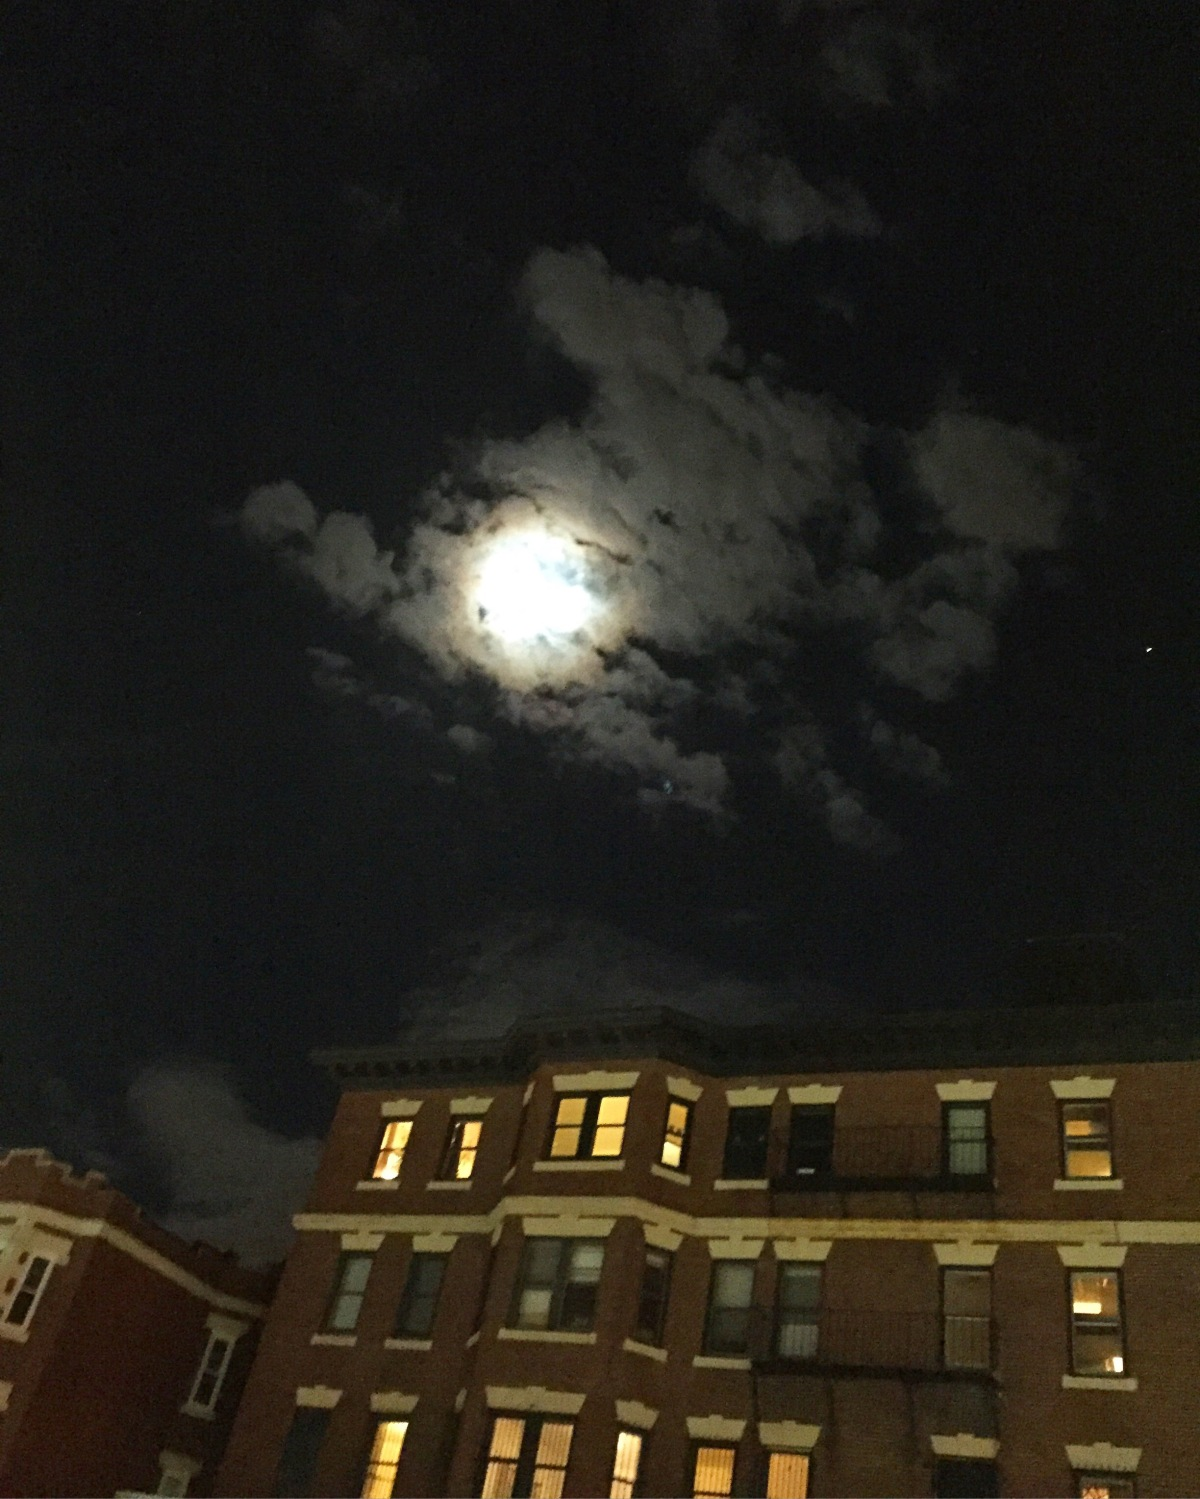 beautiful night sky in allston